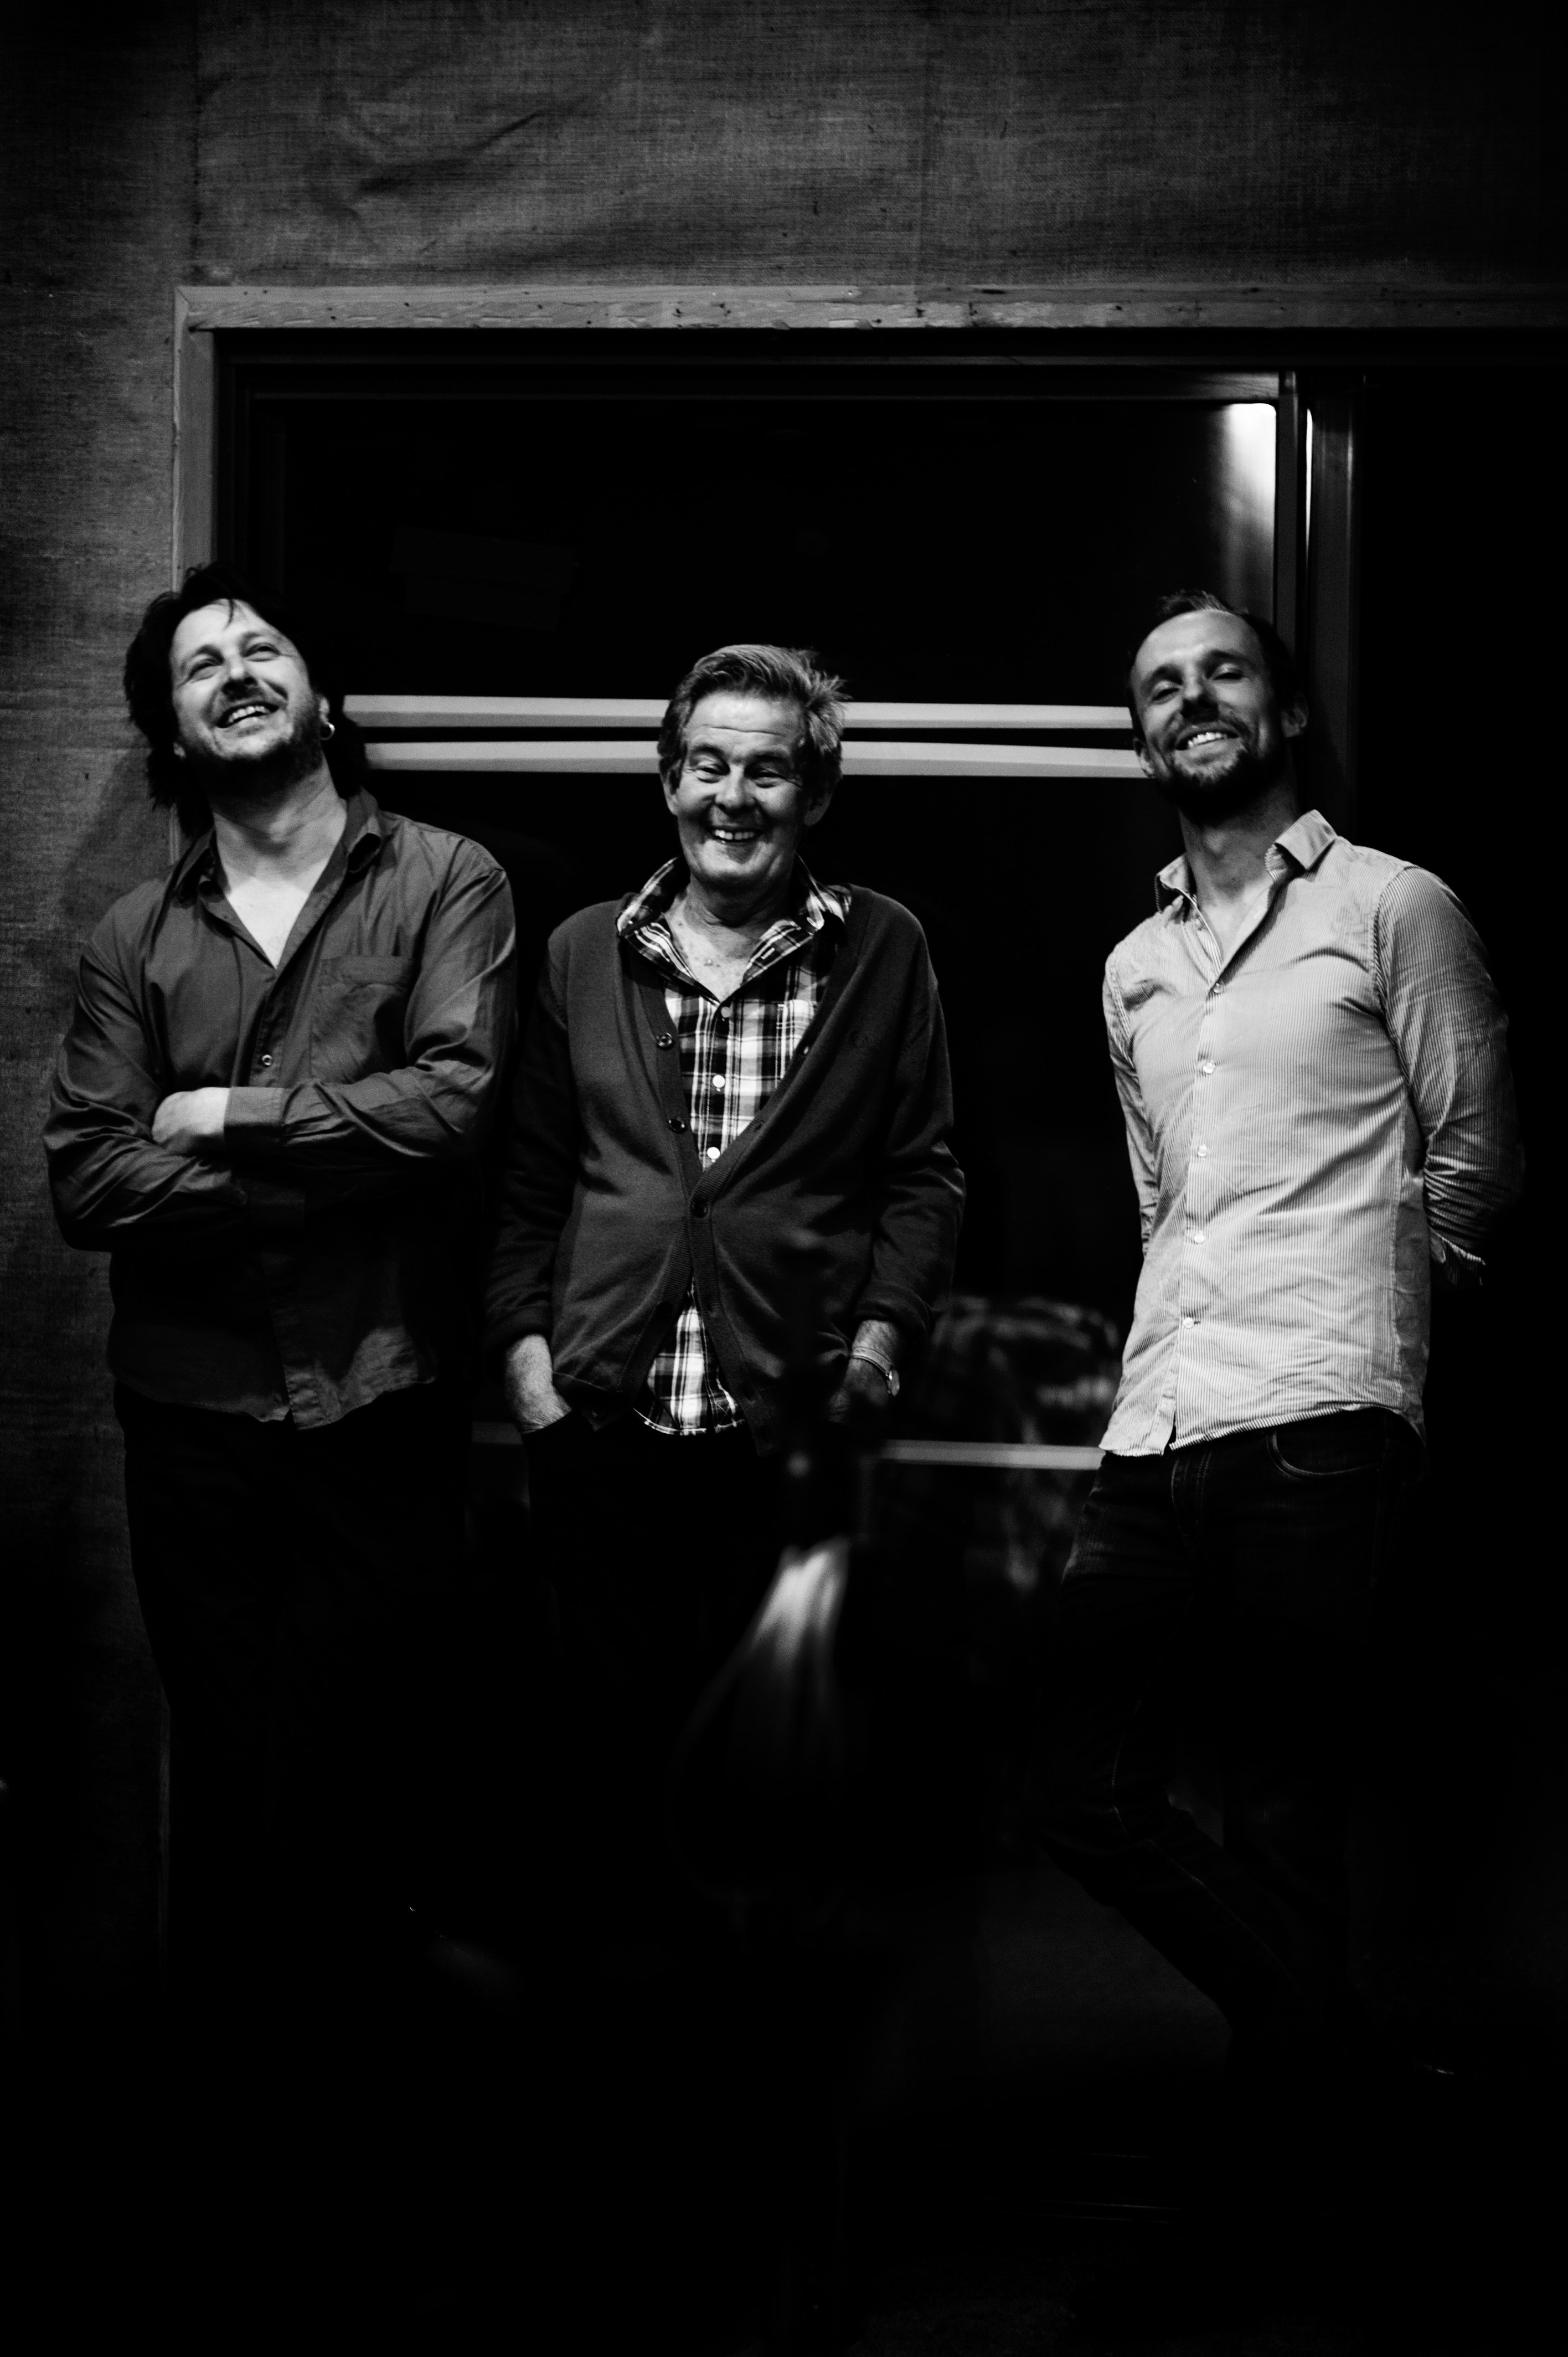 Sam Anning/Julien Wilson/Allan Browne - click on the photo to download a 300dpi copy